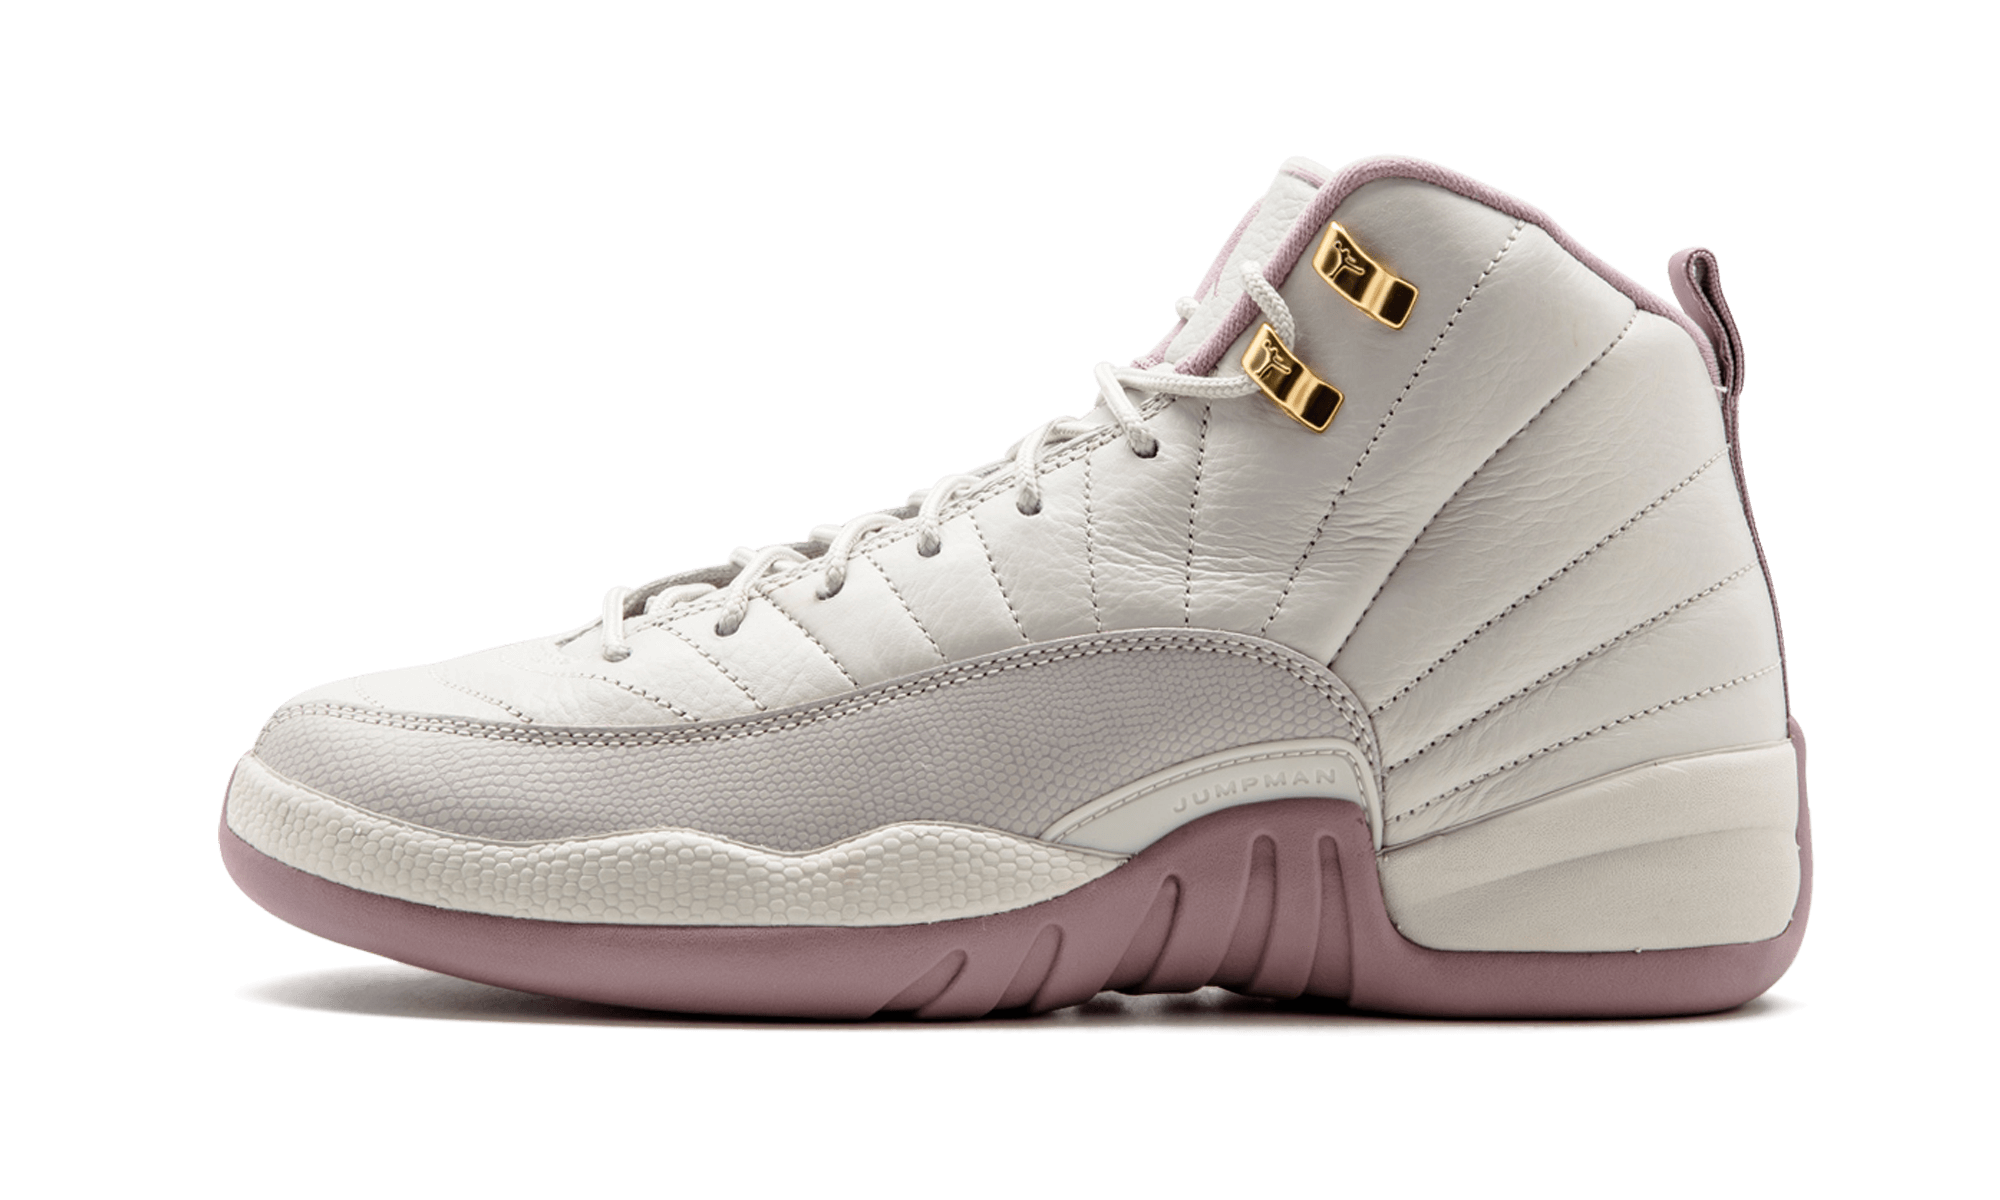 new concept b8300 cc30b Air Jordan 12 Retro PREM HC GG - 845028 025 | Shoes | Air ...